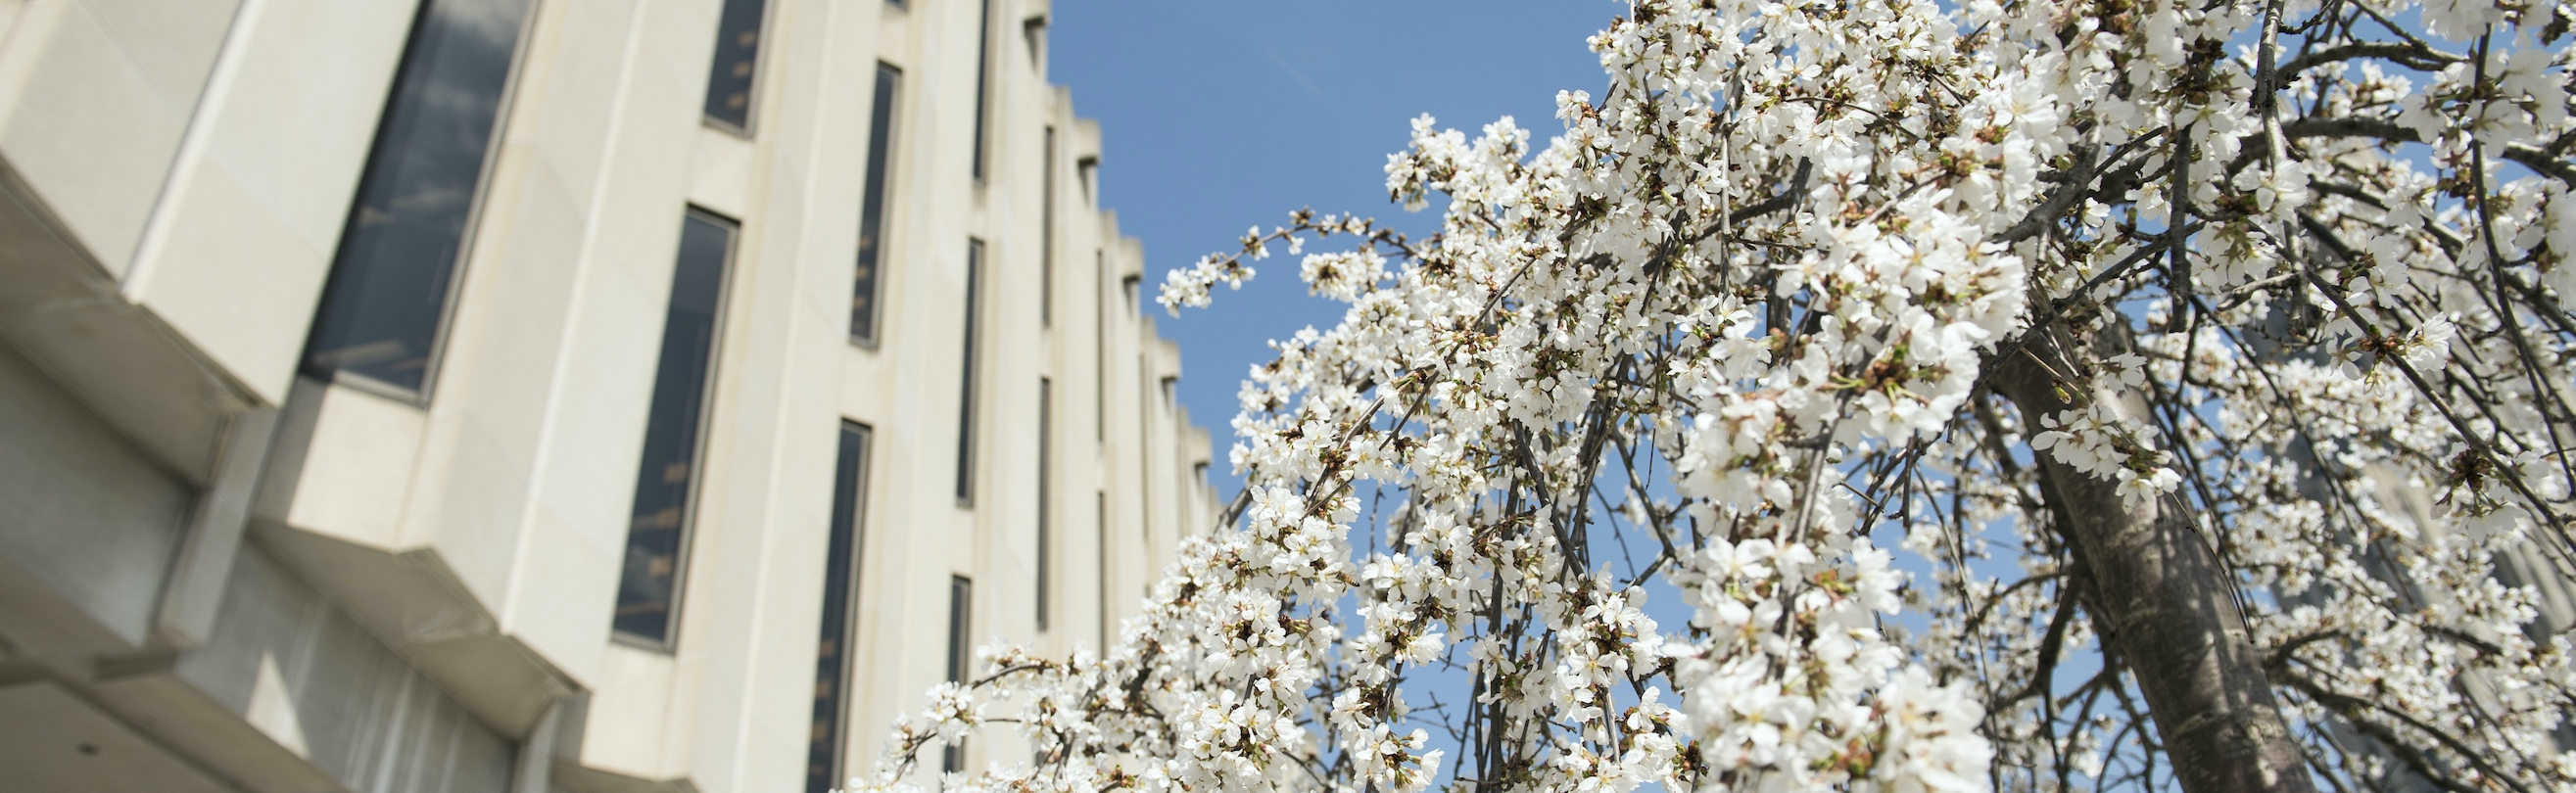 Hillman Library and blooming tree